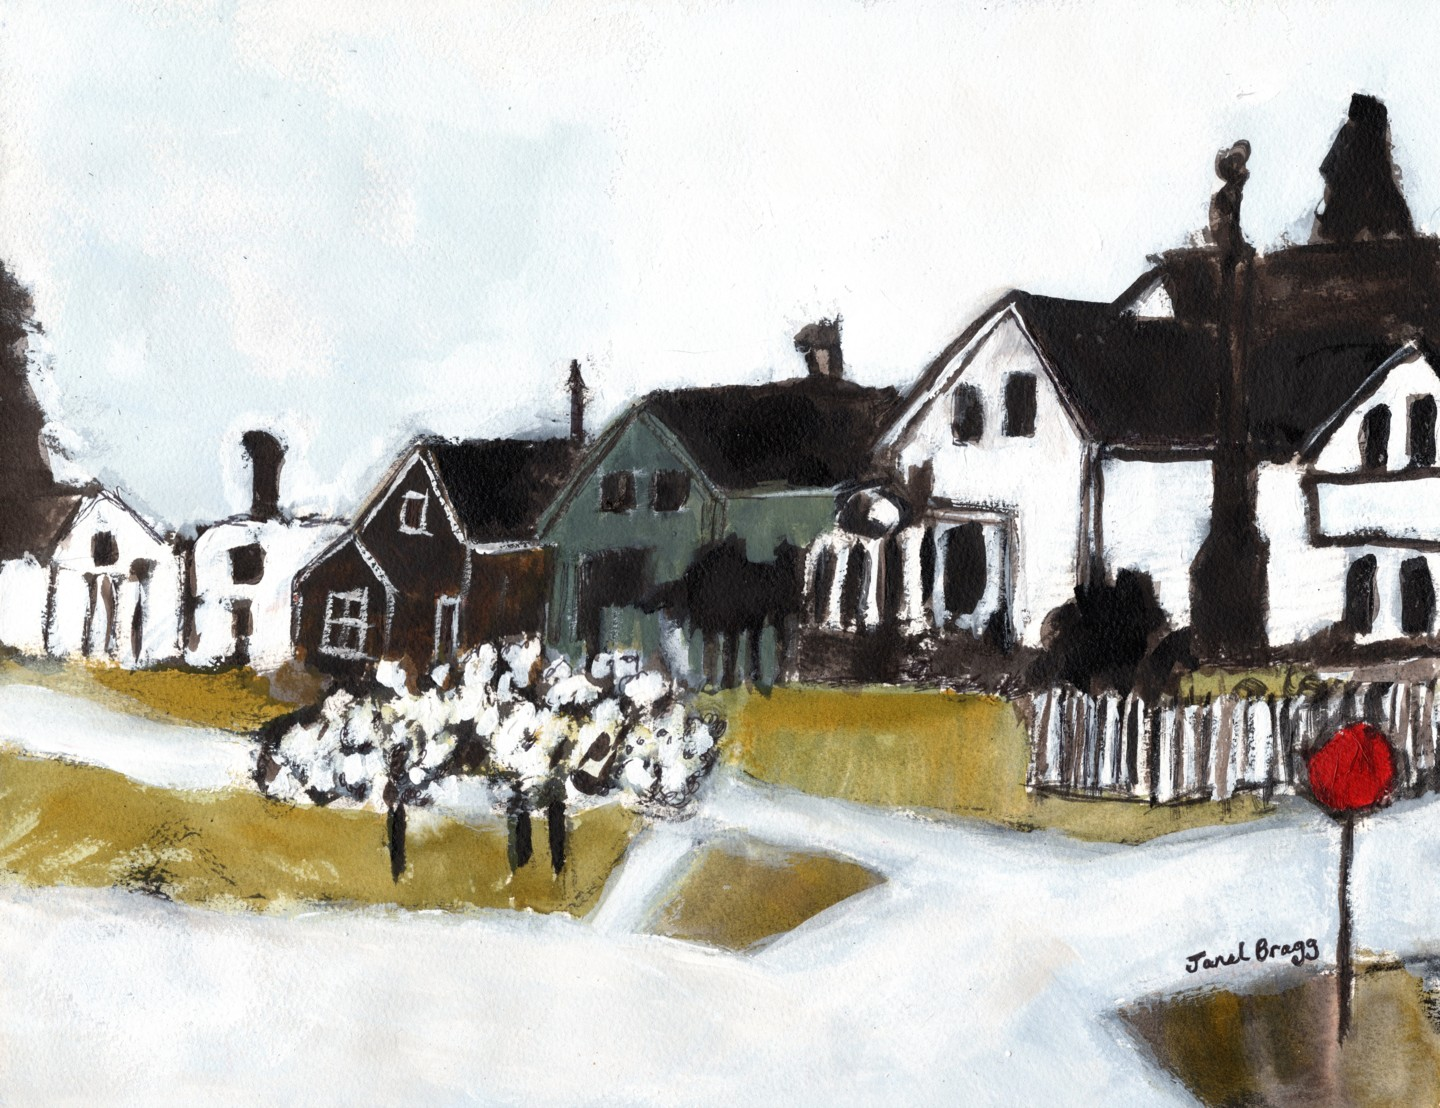 Janel Bragg - Houses on 7th Street